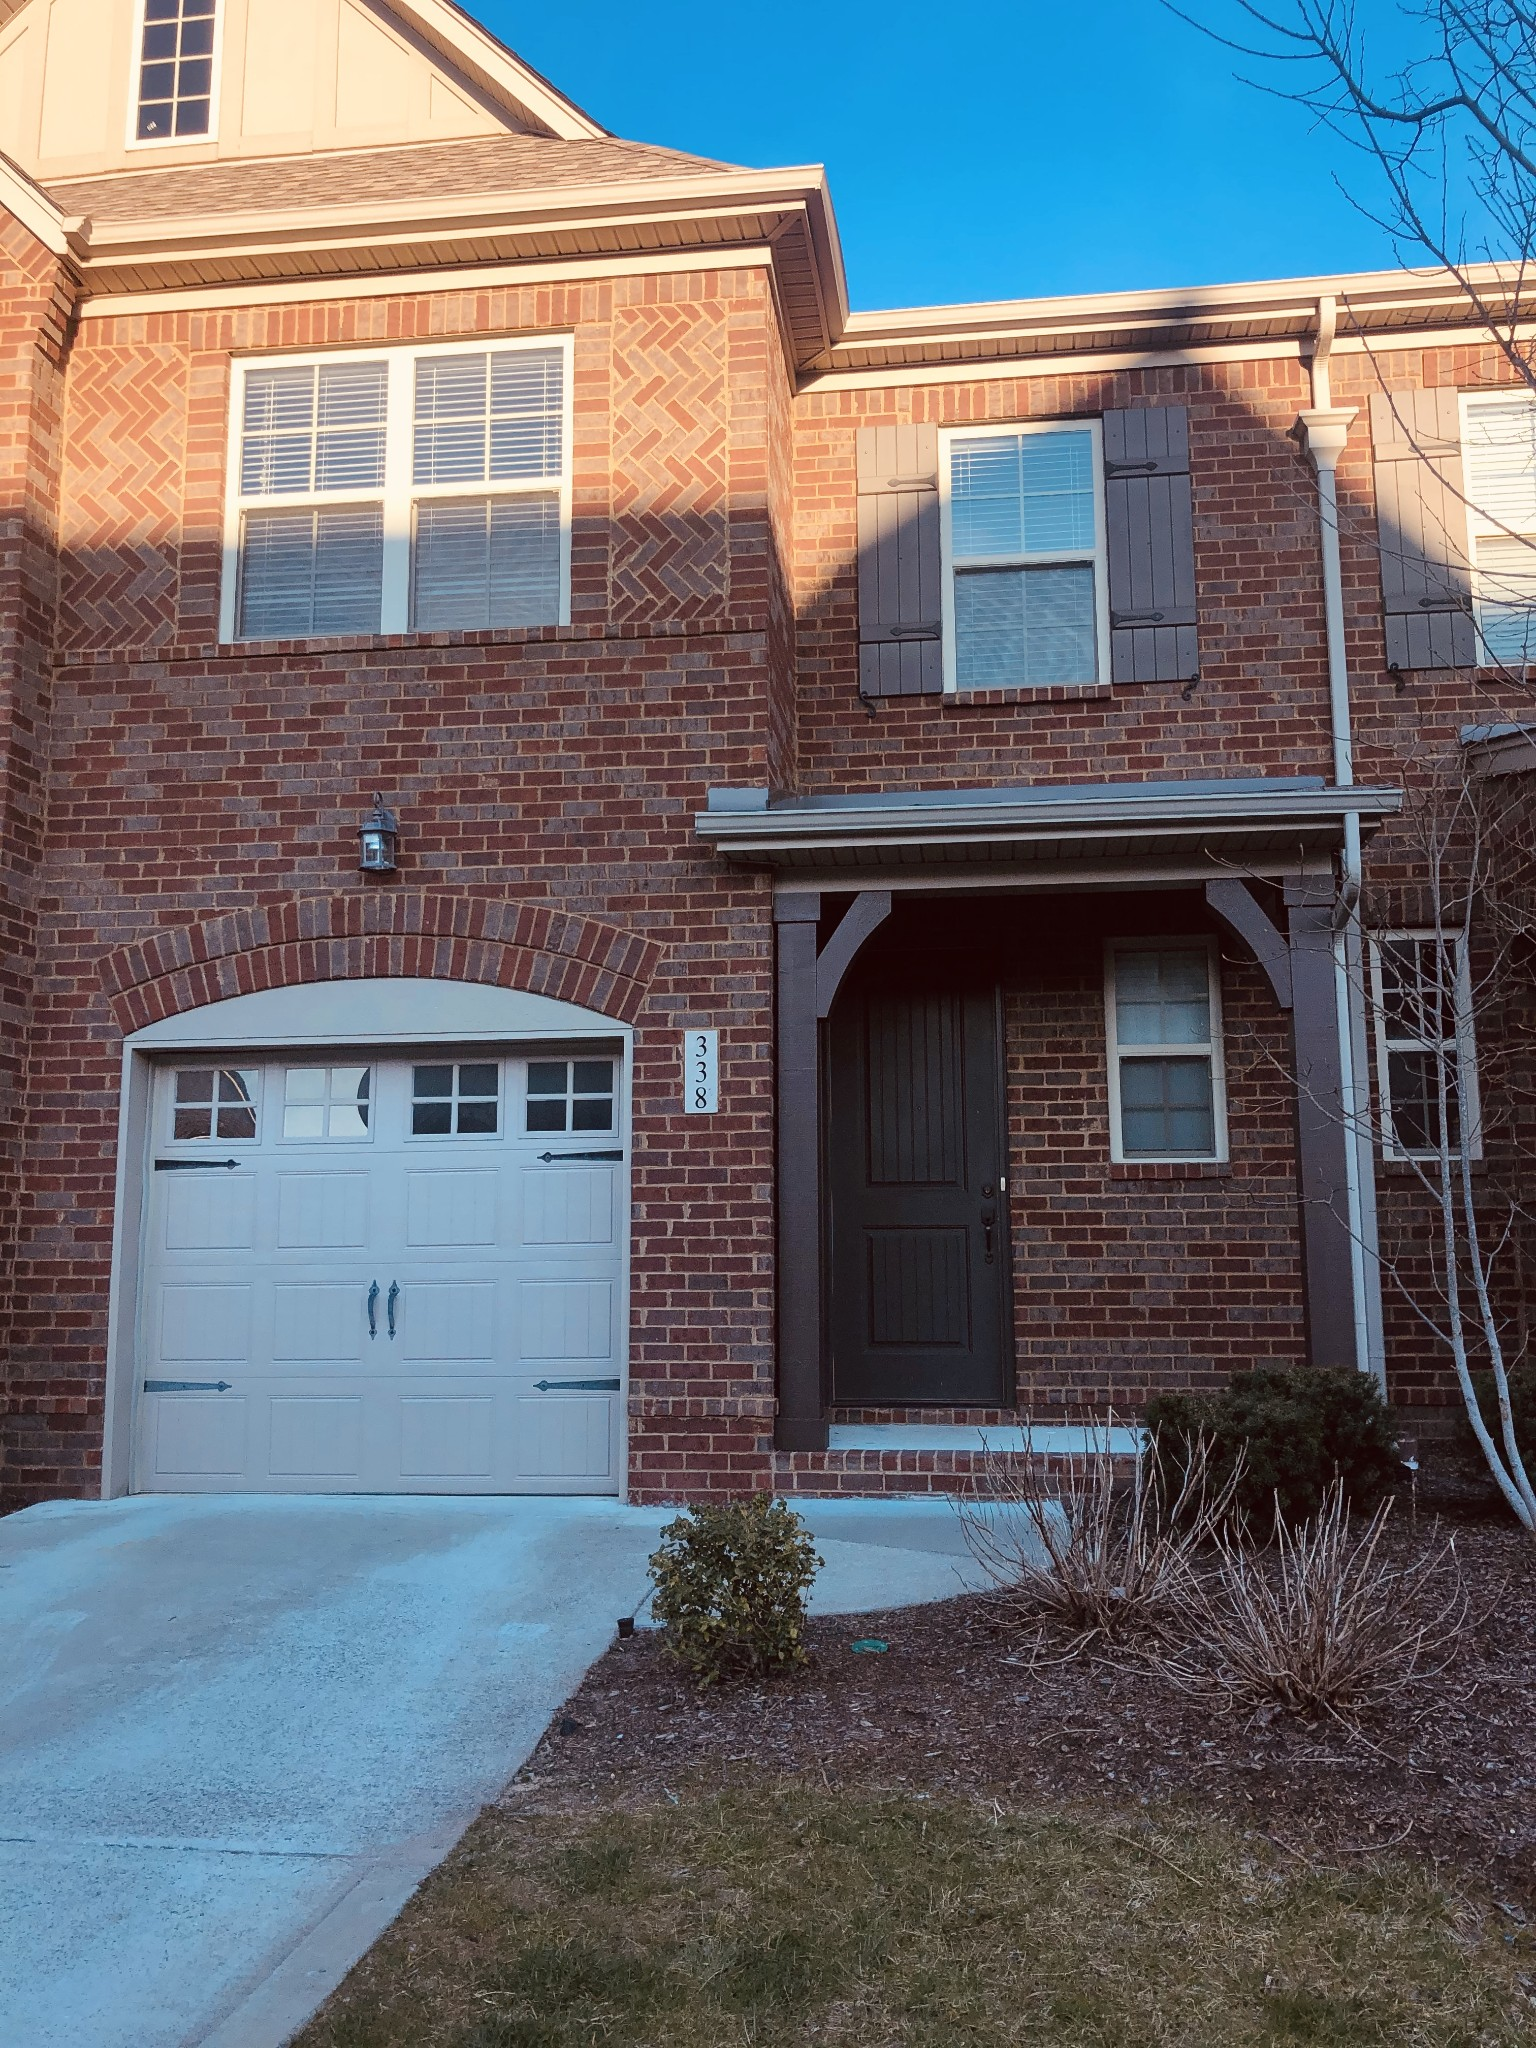 Town Home in Indian Lake Village.  3BR/2.5BA features Ceramic Tile in Master Bath, Hall Bath & Utility Room. Kitchen offers Granite Countertops, Under-cabinet Lights, Pantry, Large eating bar Island, rear patio, 1 car attached garage.  Common areas include dog park. Convenient to the Streets at Indian Lake shopping, movie theater and restaurants.